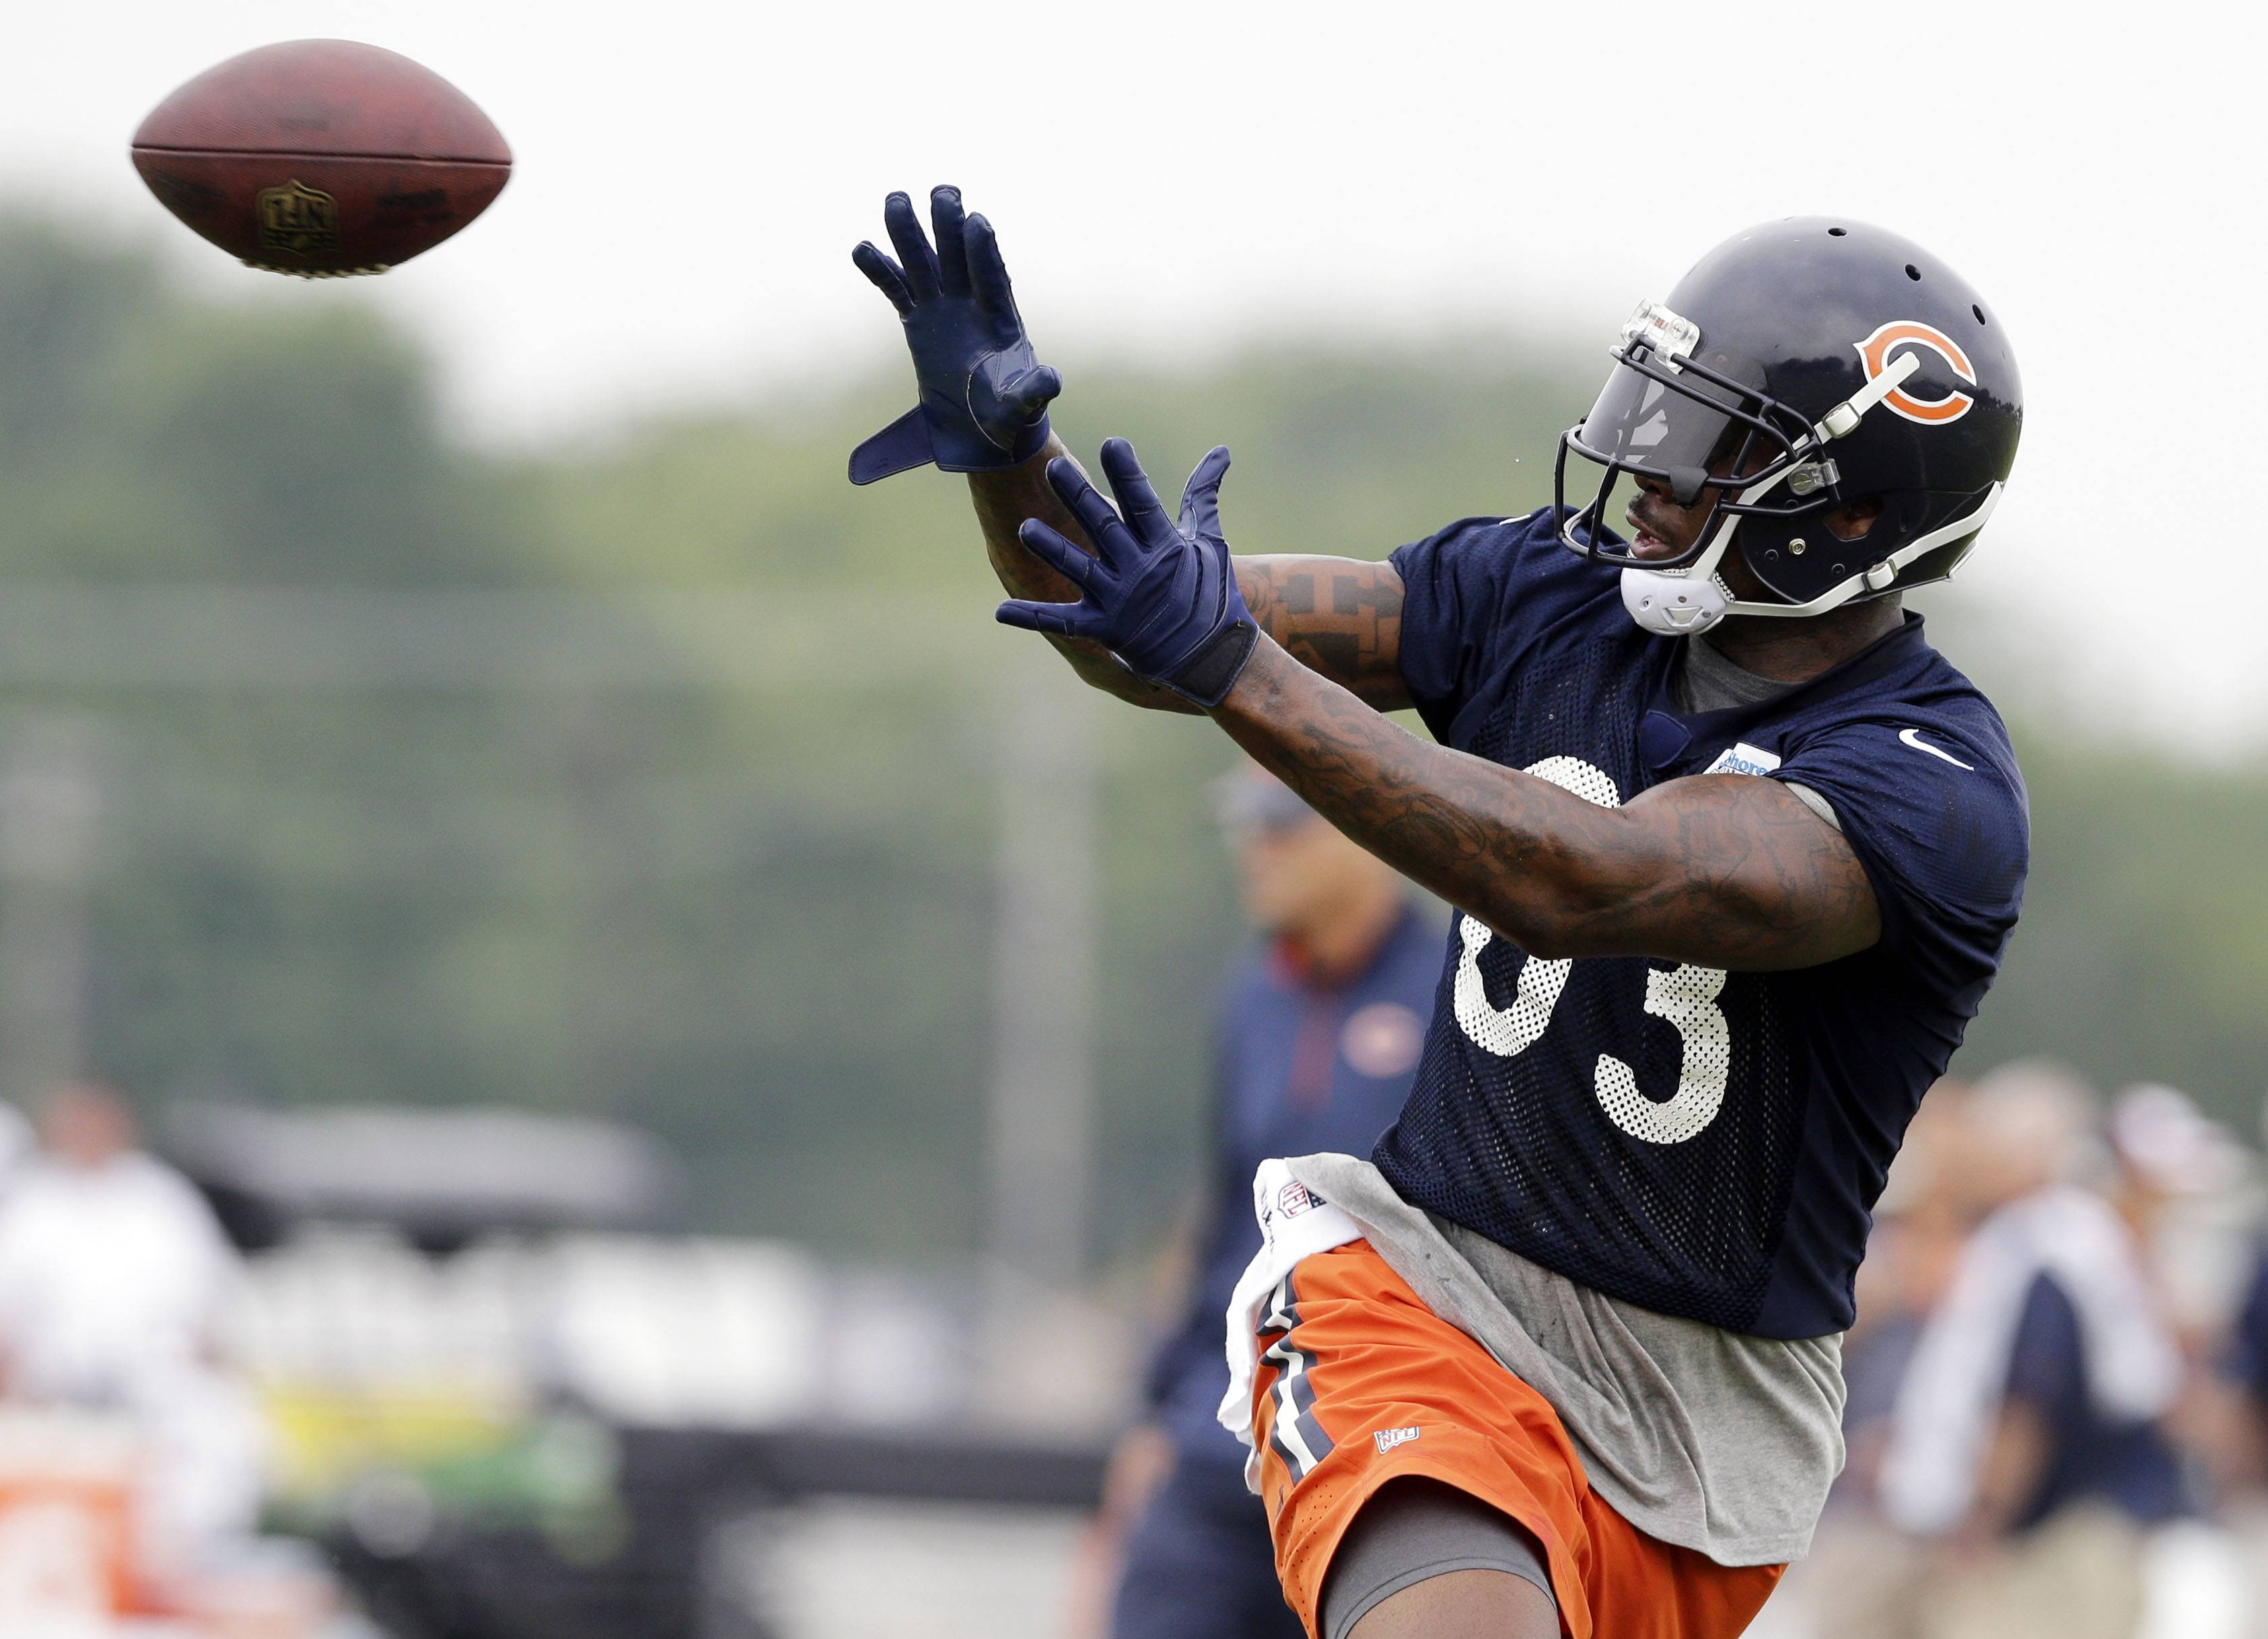 Chicago Bears tight end Martellus Bennett was suspended indefinitely and fined by team officials for disrupting practice and slamming rookie cornerback Kyle Fuller to the ground during Monday's training camp.